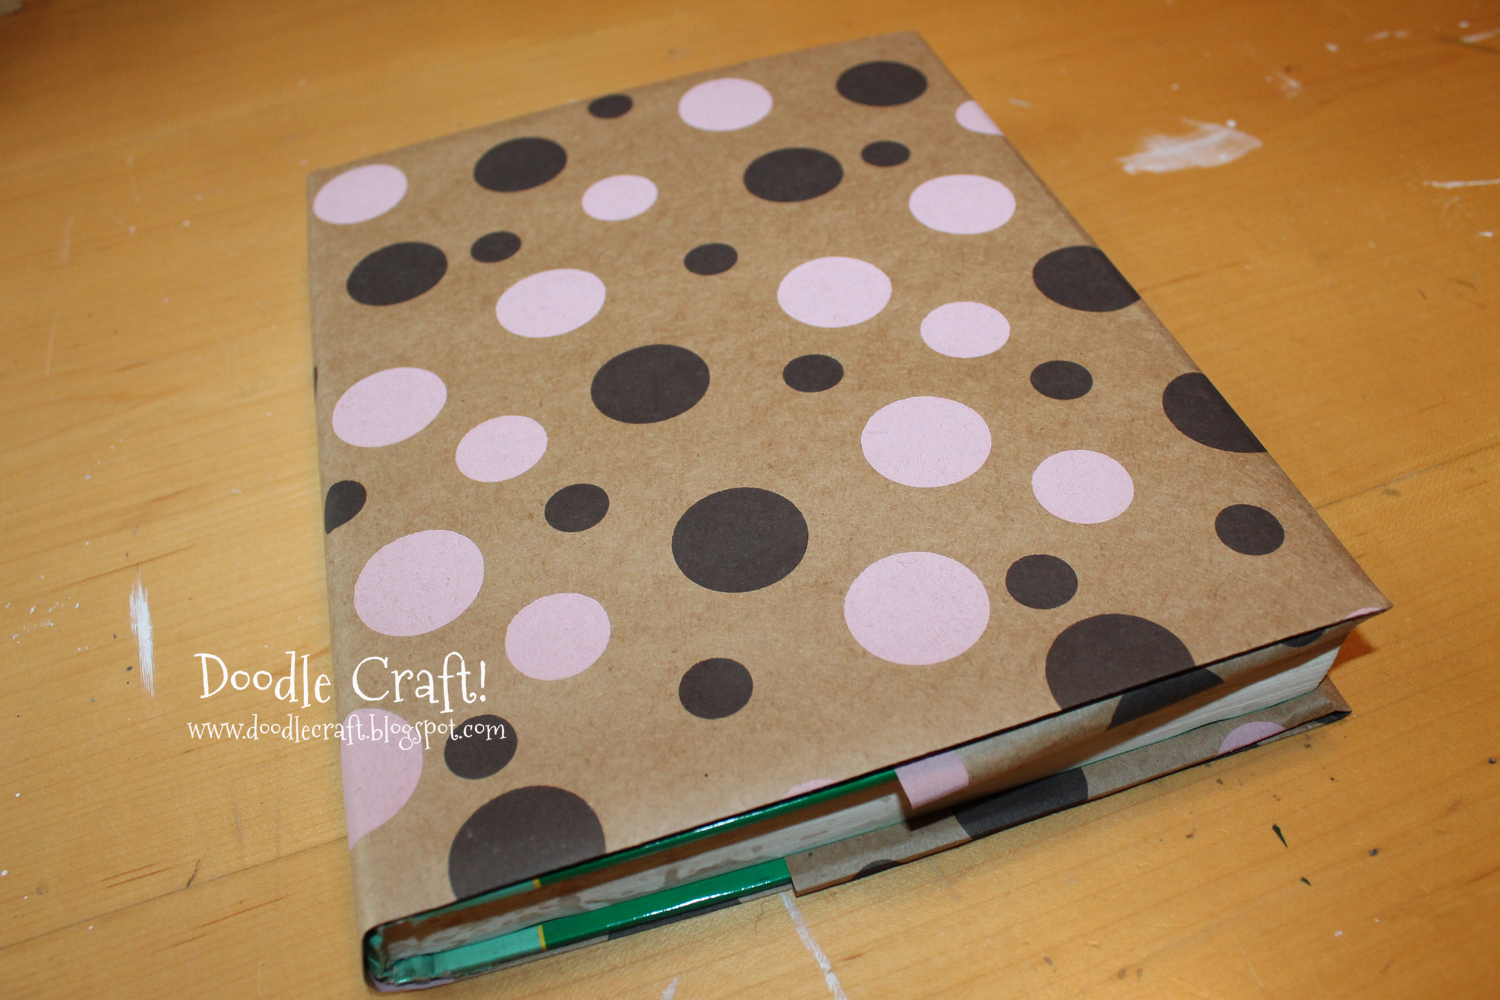 Duct Tape Book Cover Tutorial : Doodlecraft how to cover a textbook with duct tape